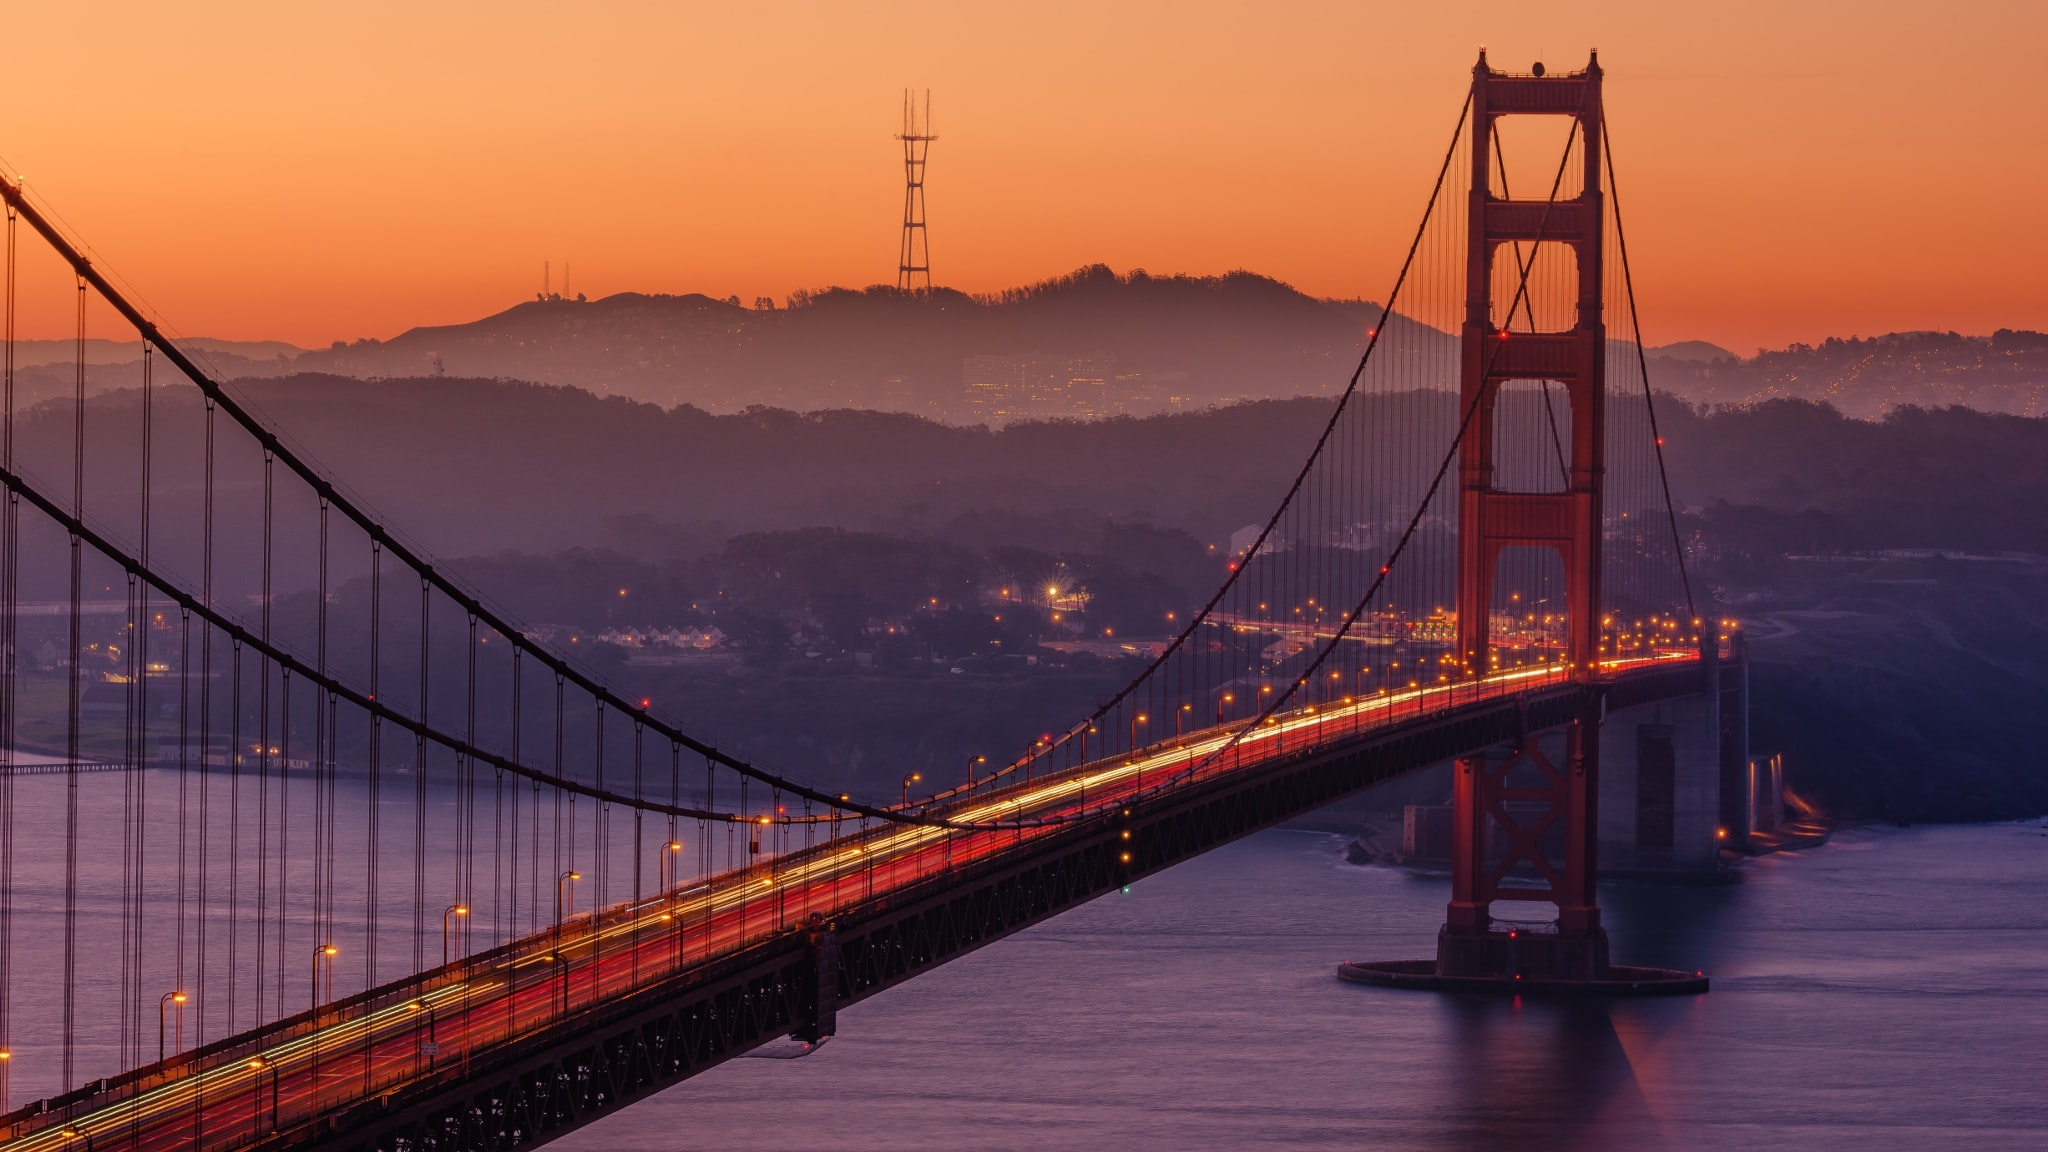 A sunset shot taken with Golden Gate Bridge as the focal point